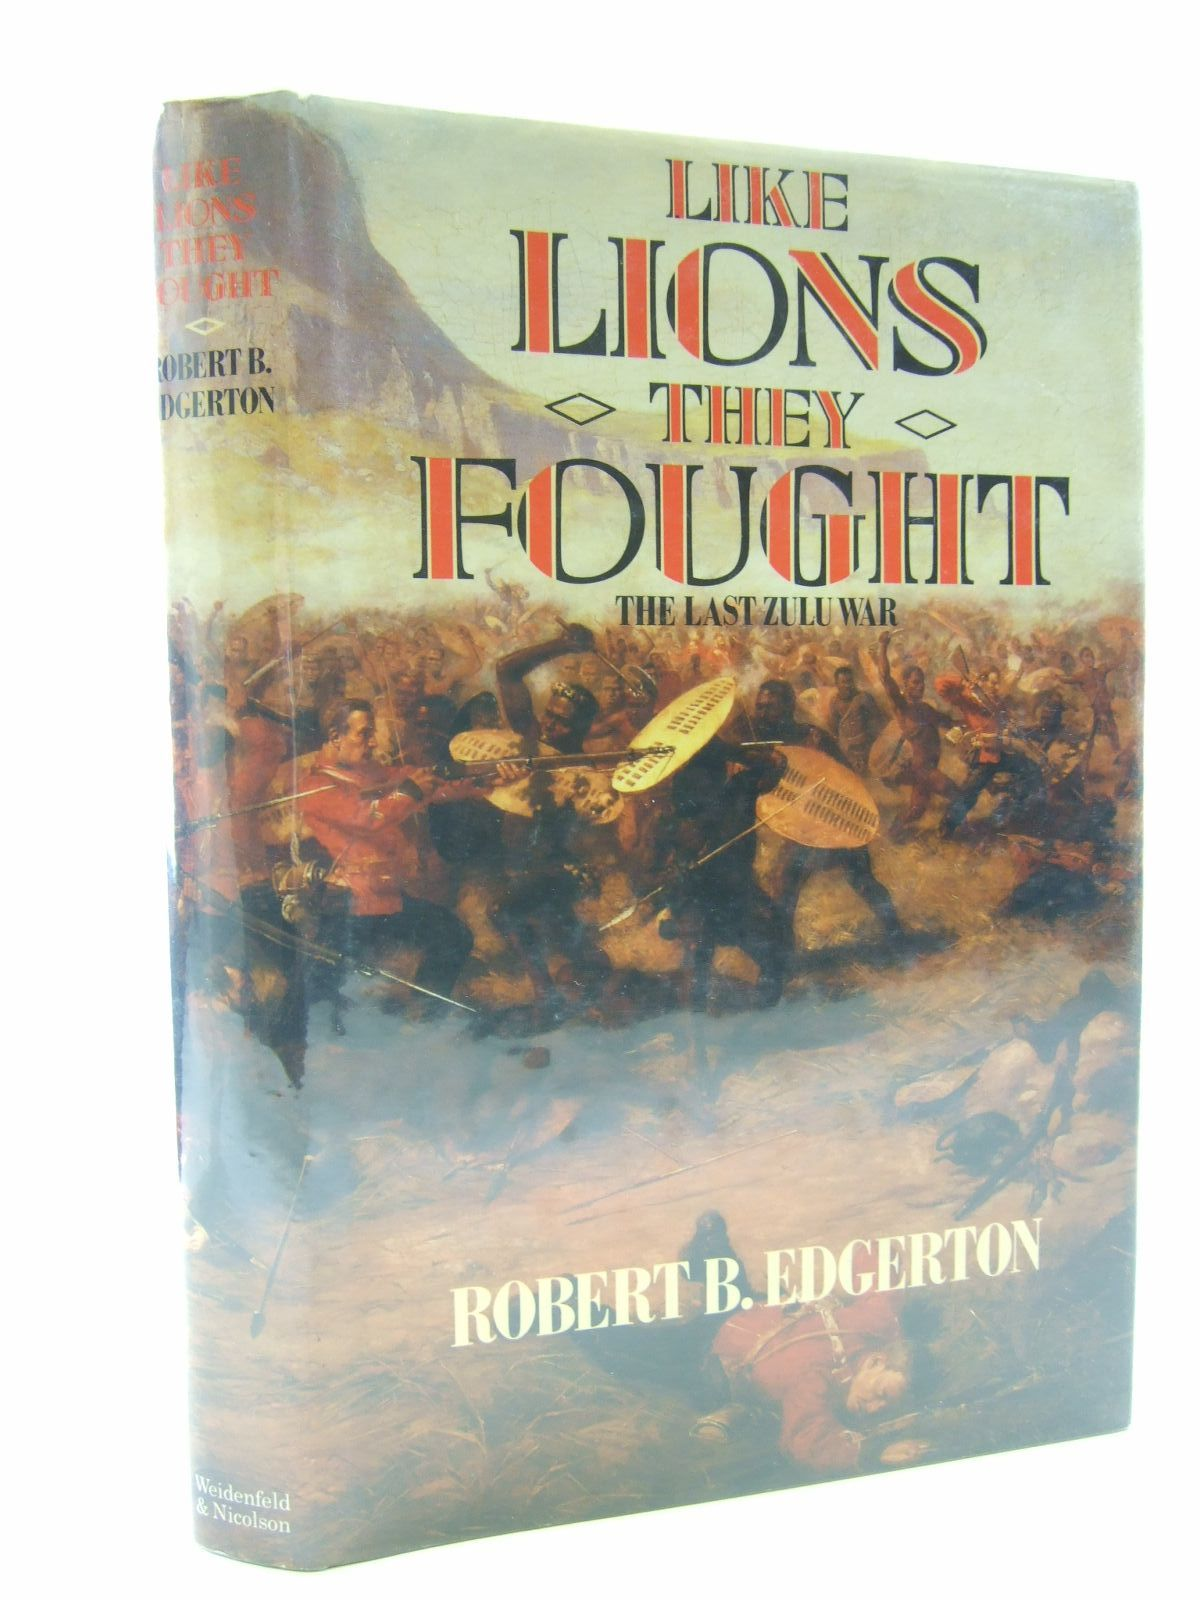 Photo of LIKE LIONS THEY FOUGHT written by Edgerton, Robert B. published by Weidenfeld and Nicolson (STOCK CODE: 2108715)  for sale by Stella & Rose's Books